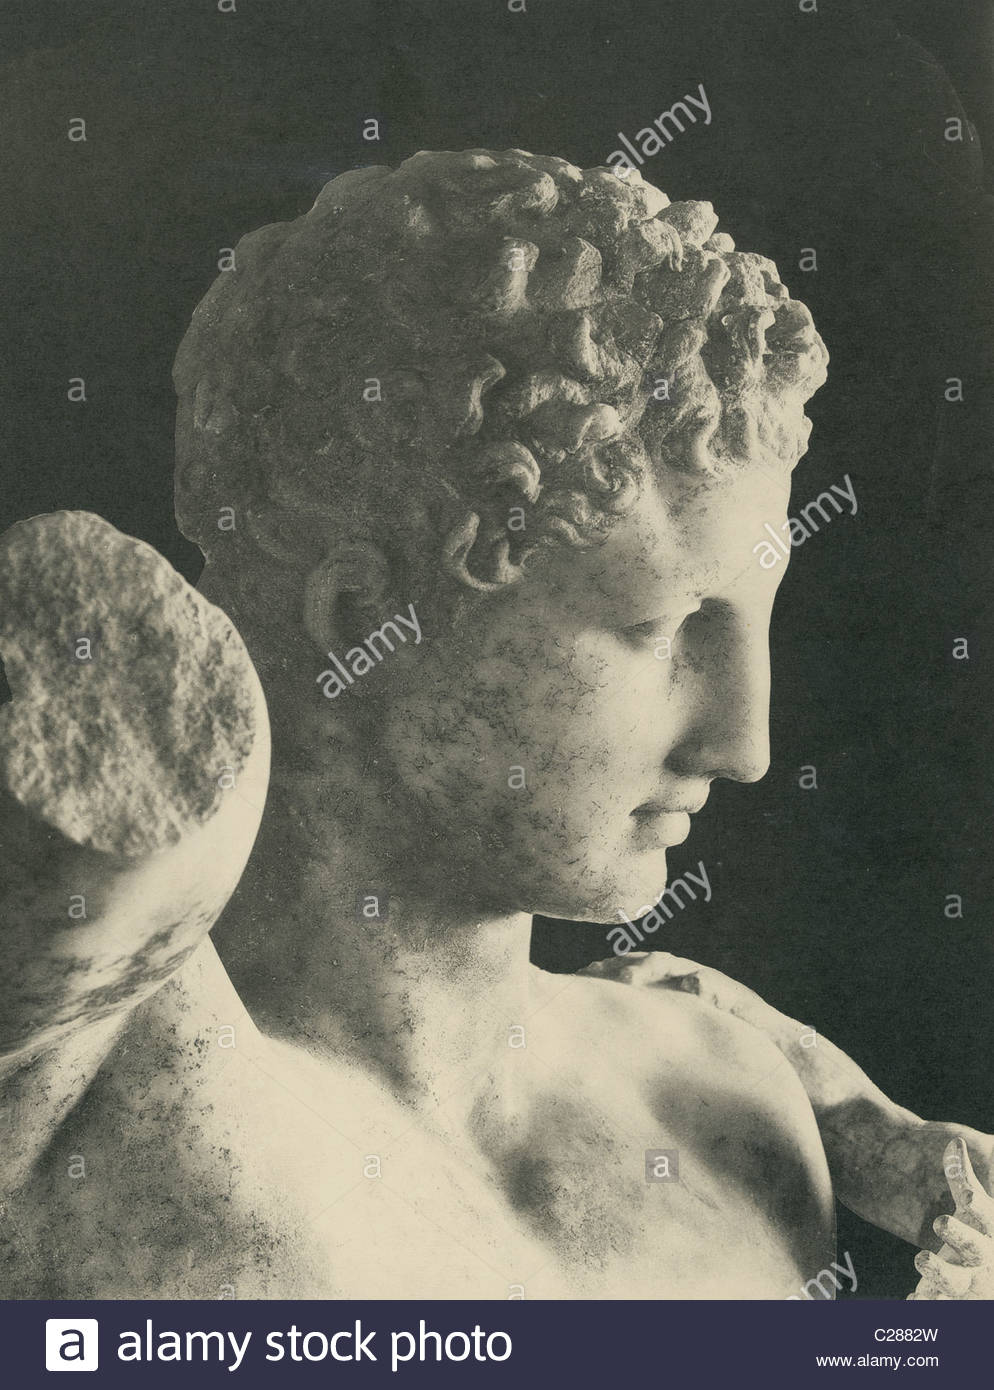 The remains of an ancient Greek sculpture of Hermes of Praxiteles. - Stock Image